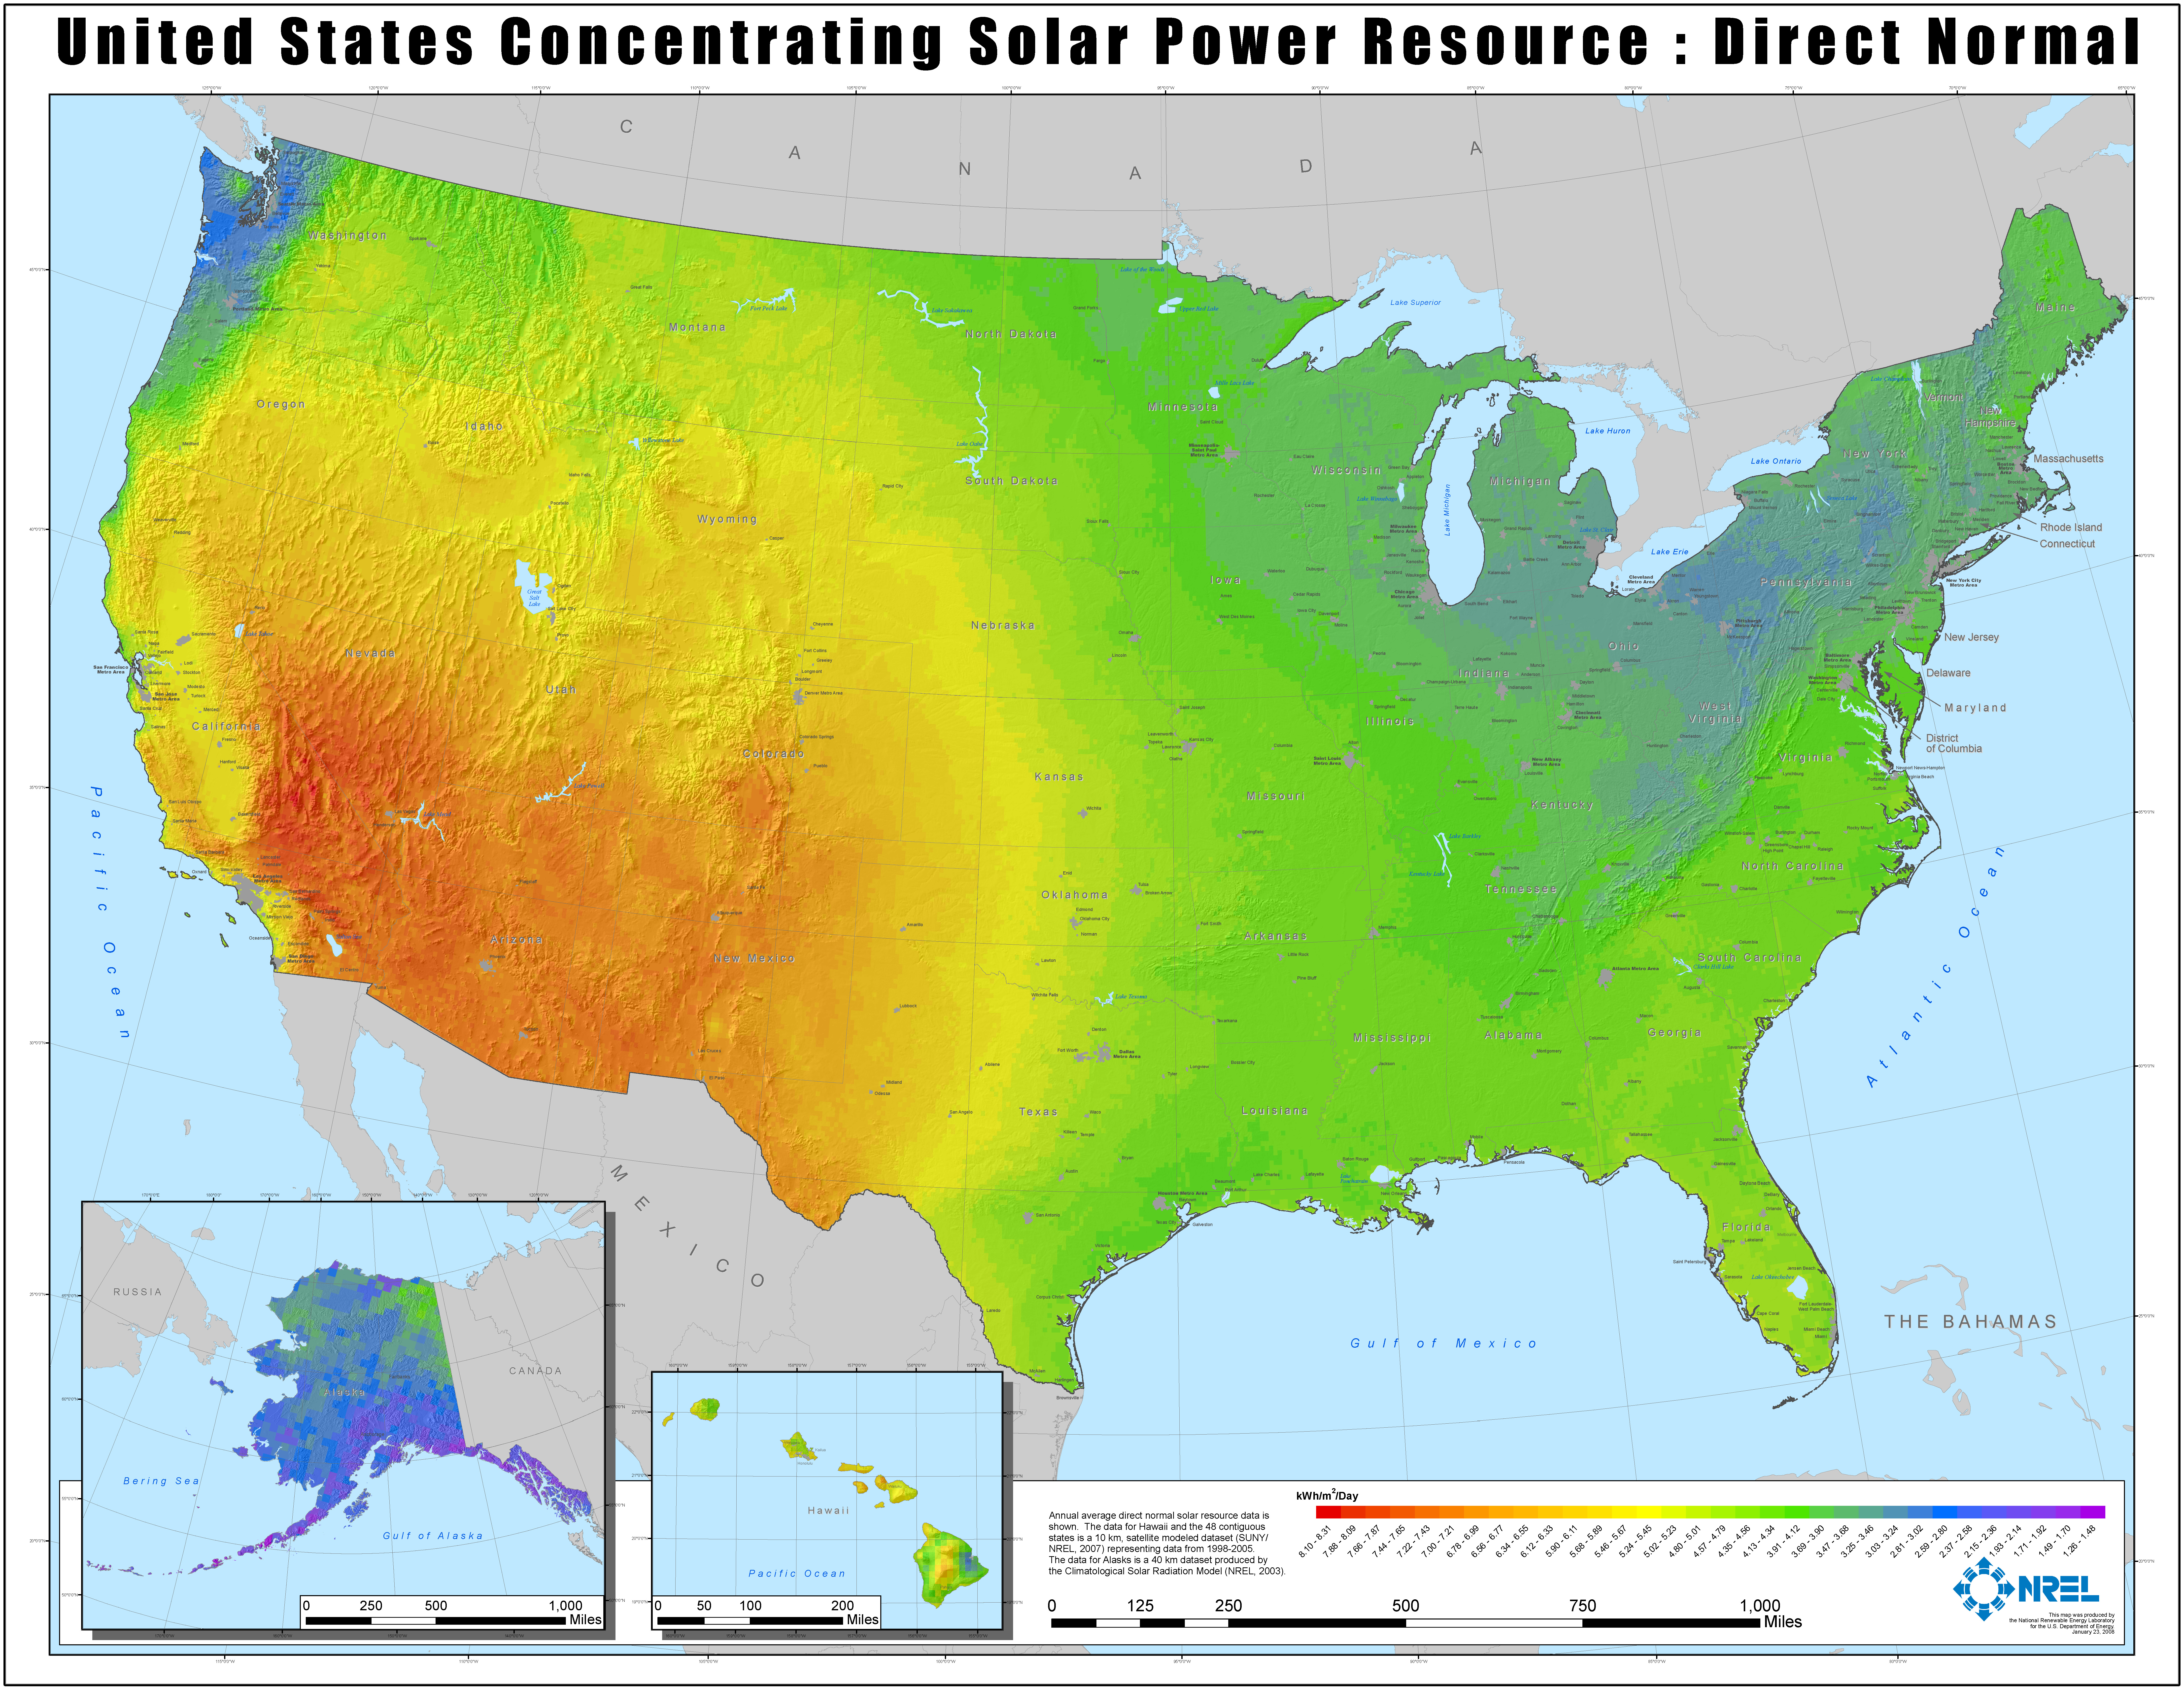 FileNREL USA CSP Map Hires Jpg Wikimedia Commons - Renewable energy sources by location in us map